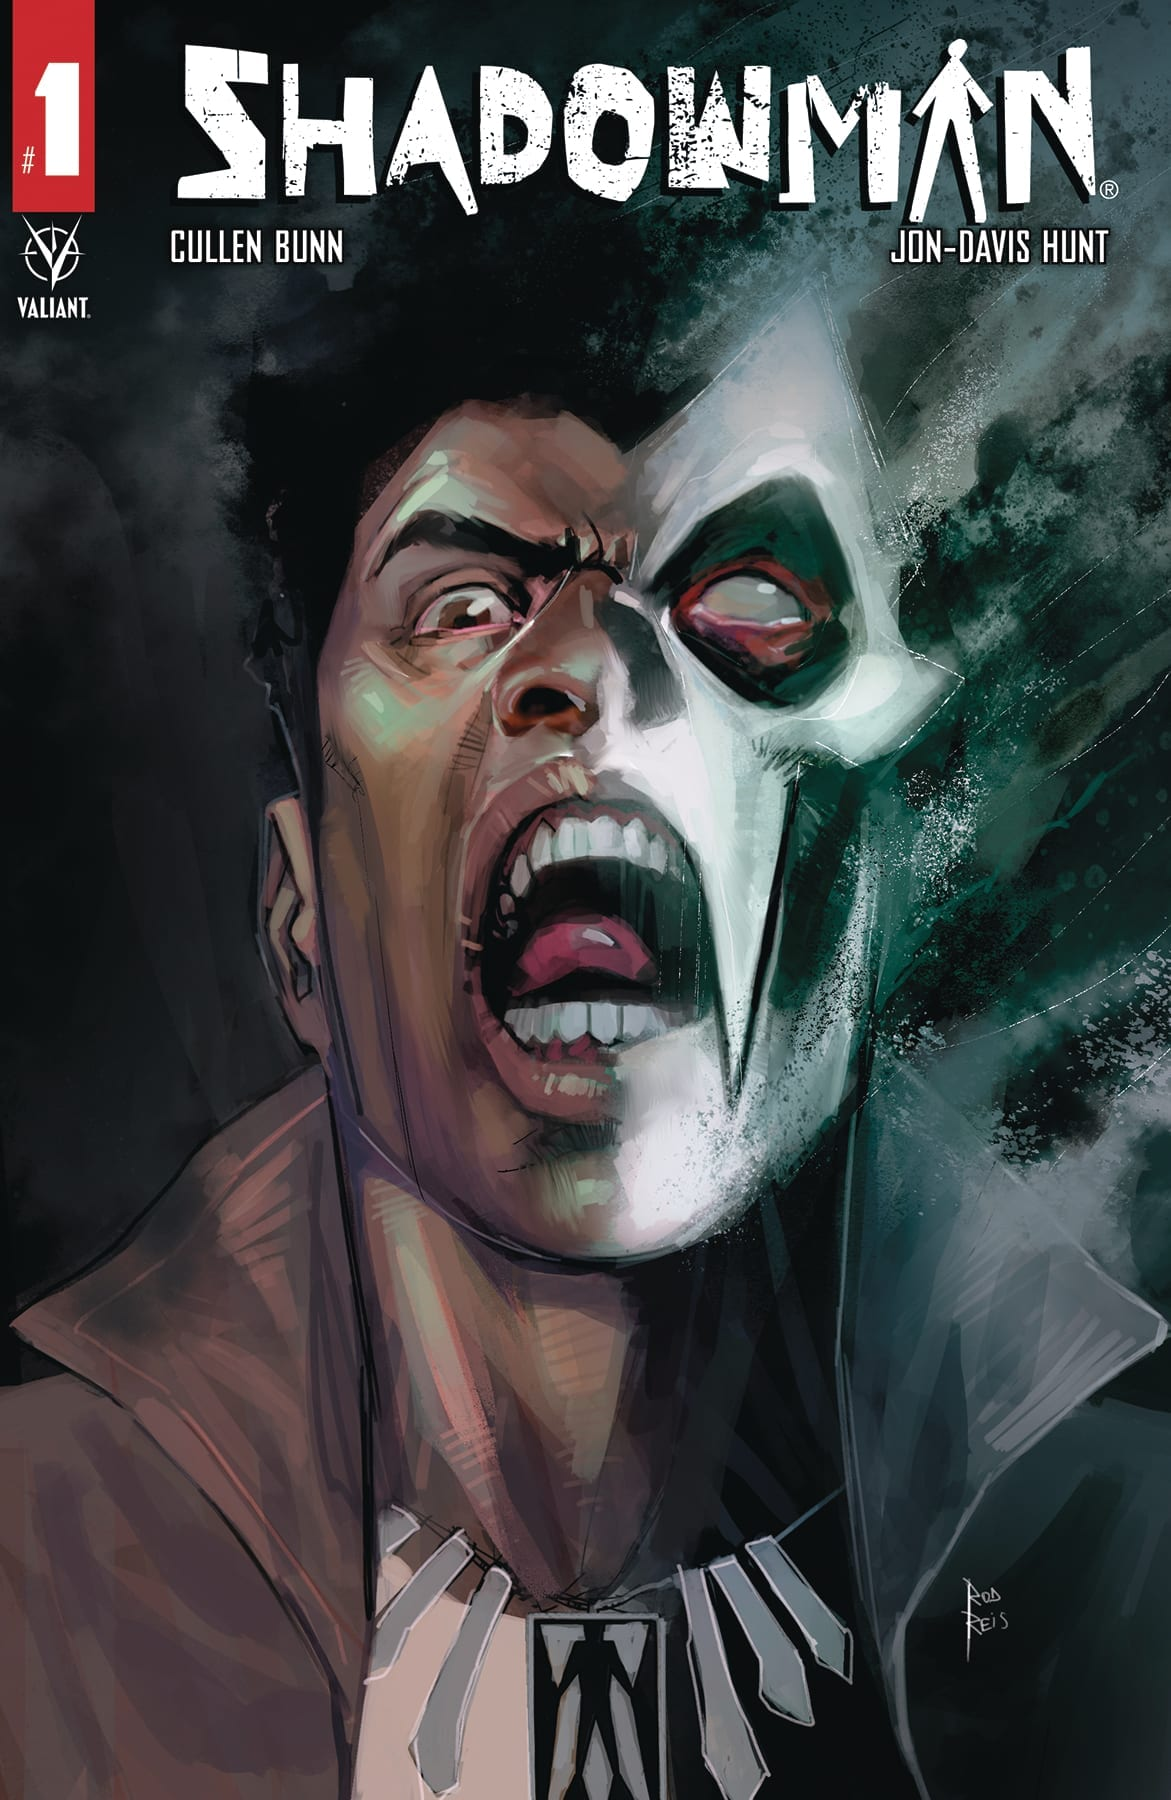 Cullen Bunn and what leads to Shadowman